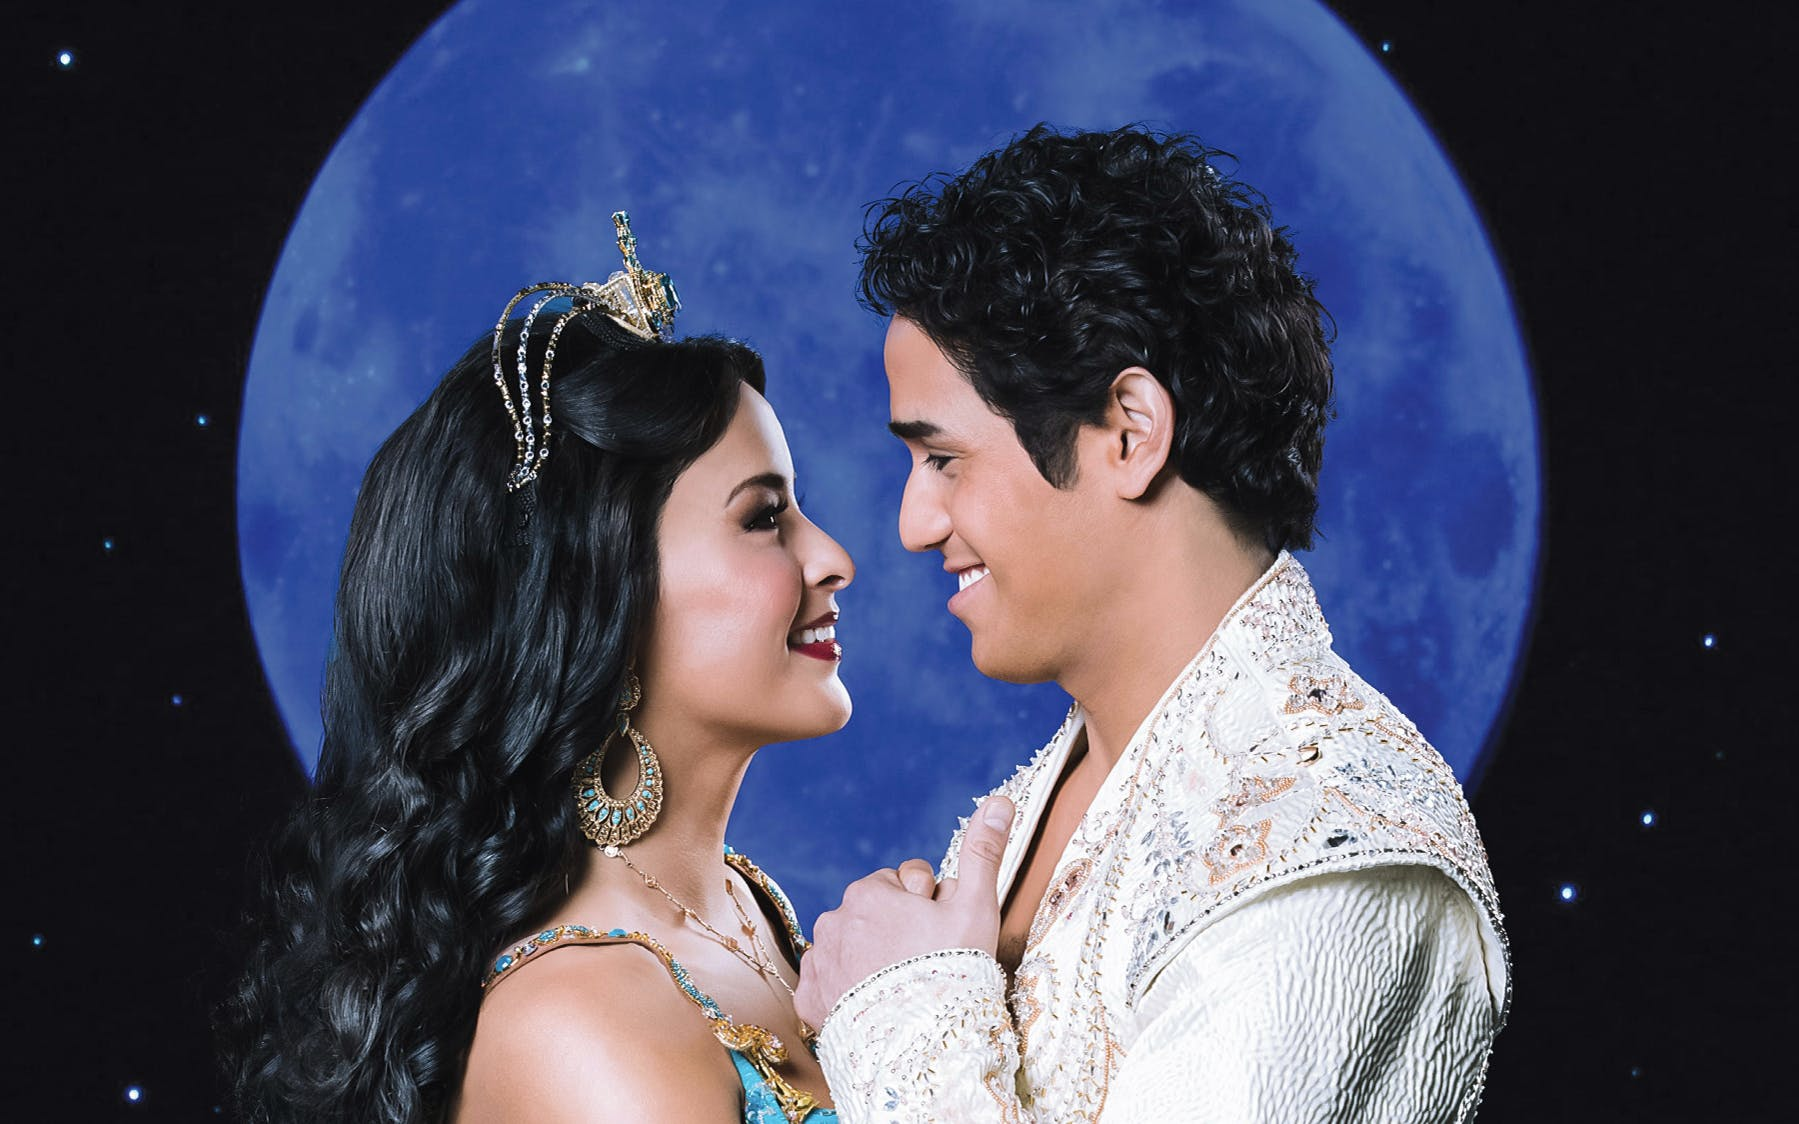 Best Broadway Shows - February 2018 - Aladdin